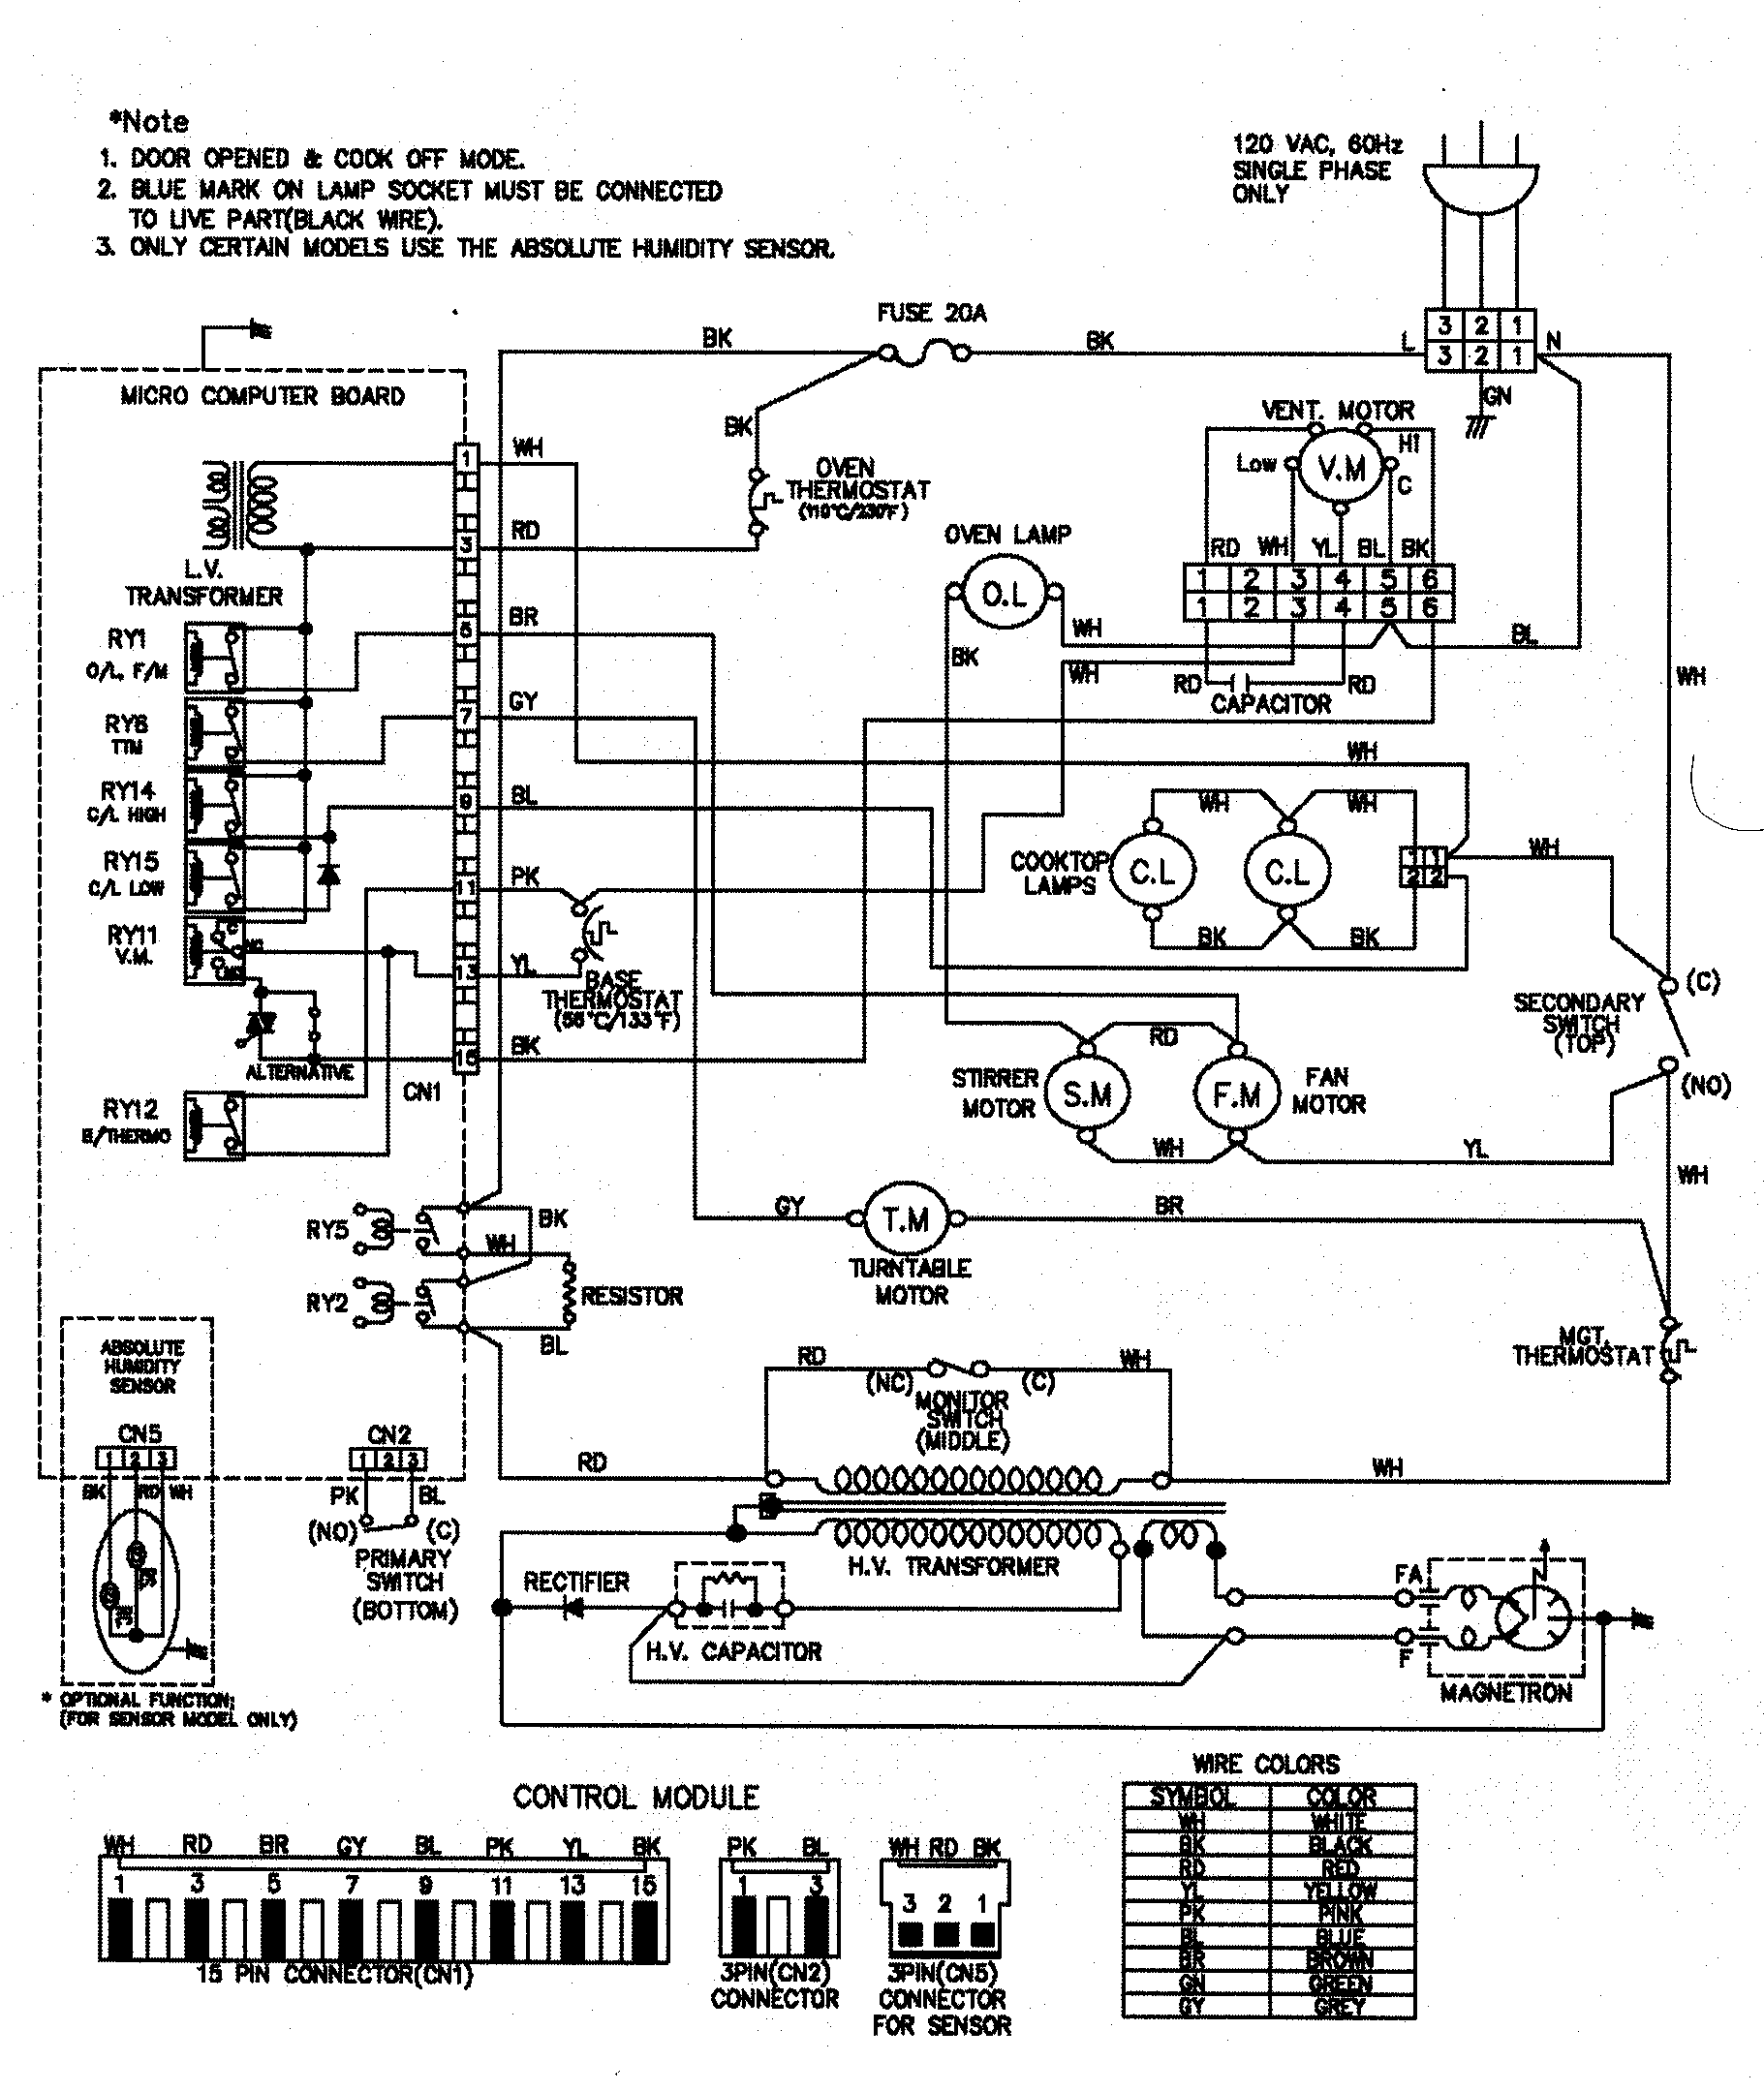 delco radio wiring diagram model 16213825 cobray m11